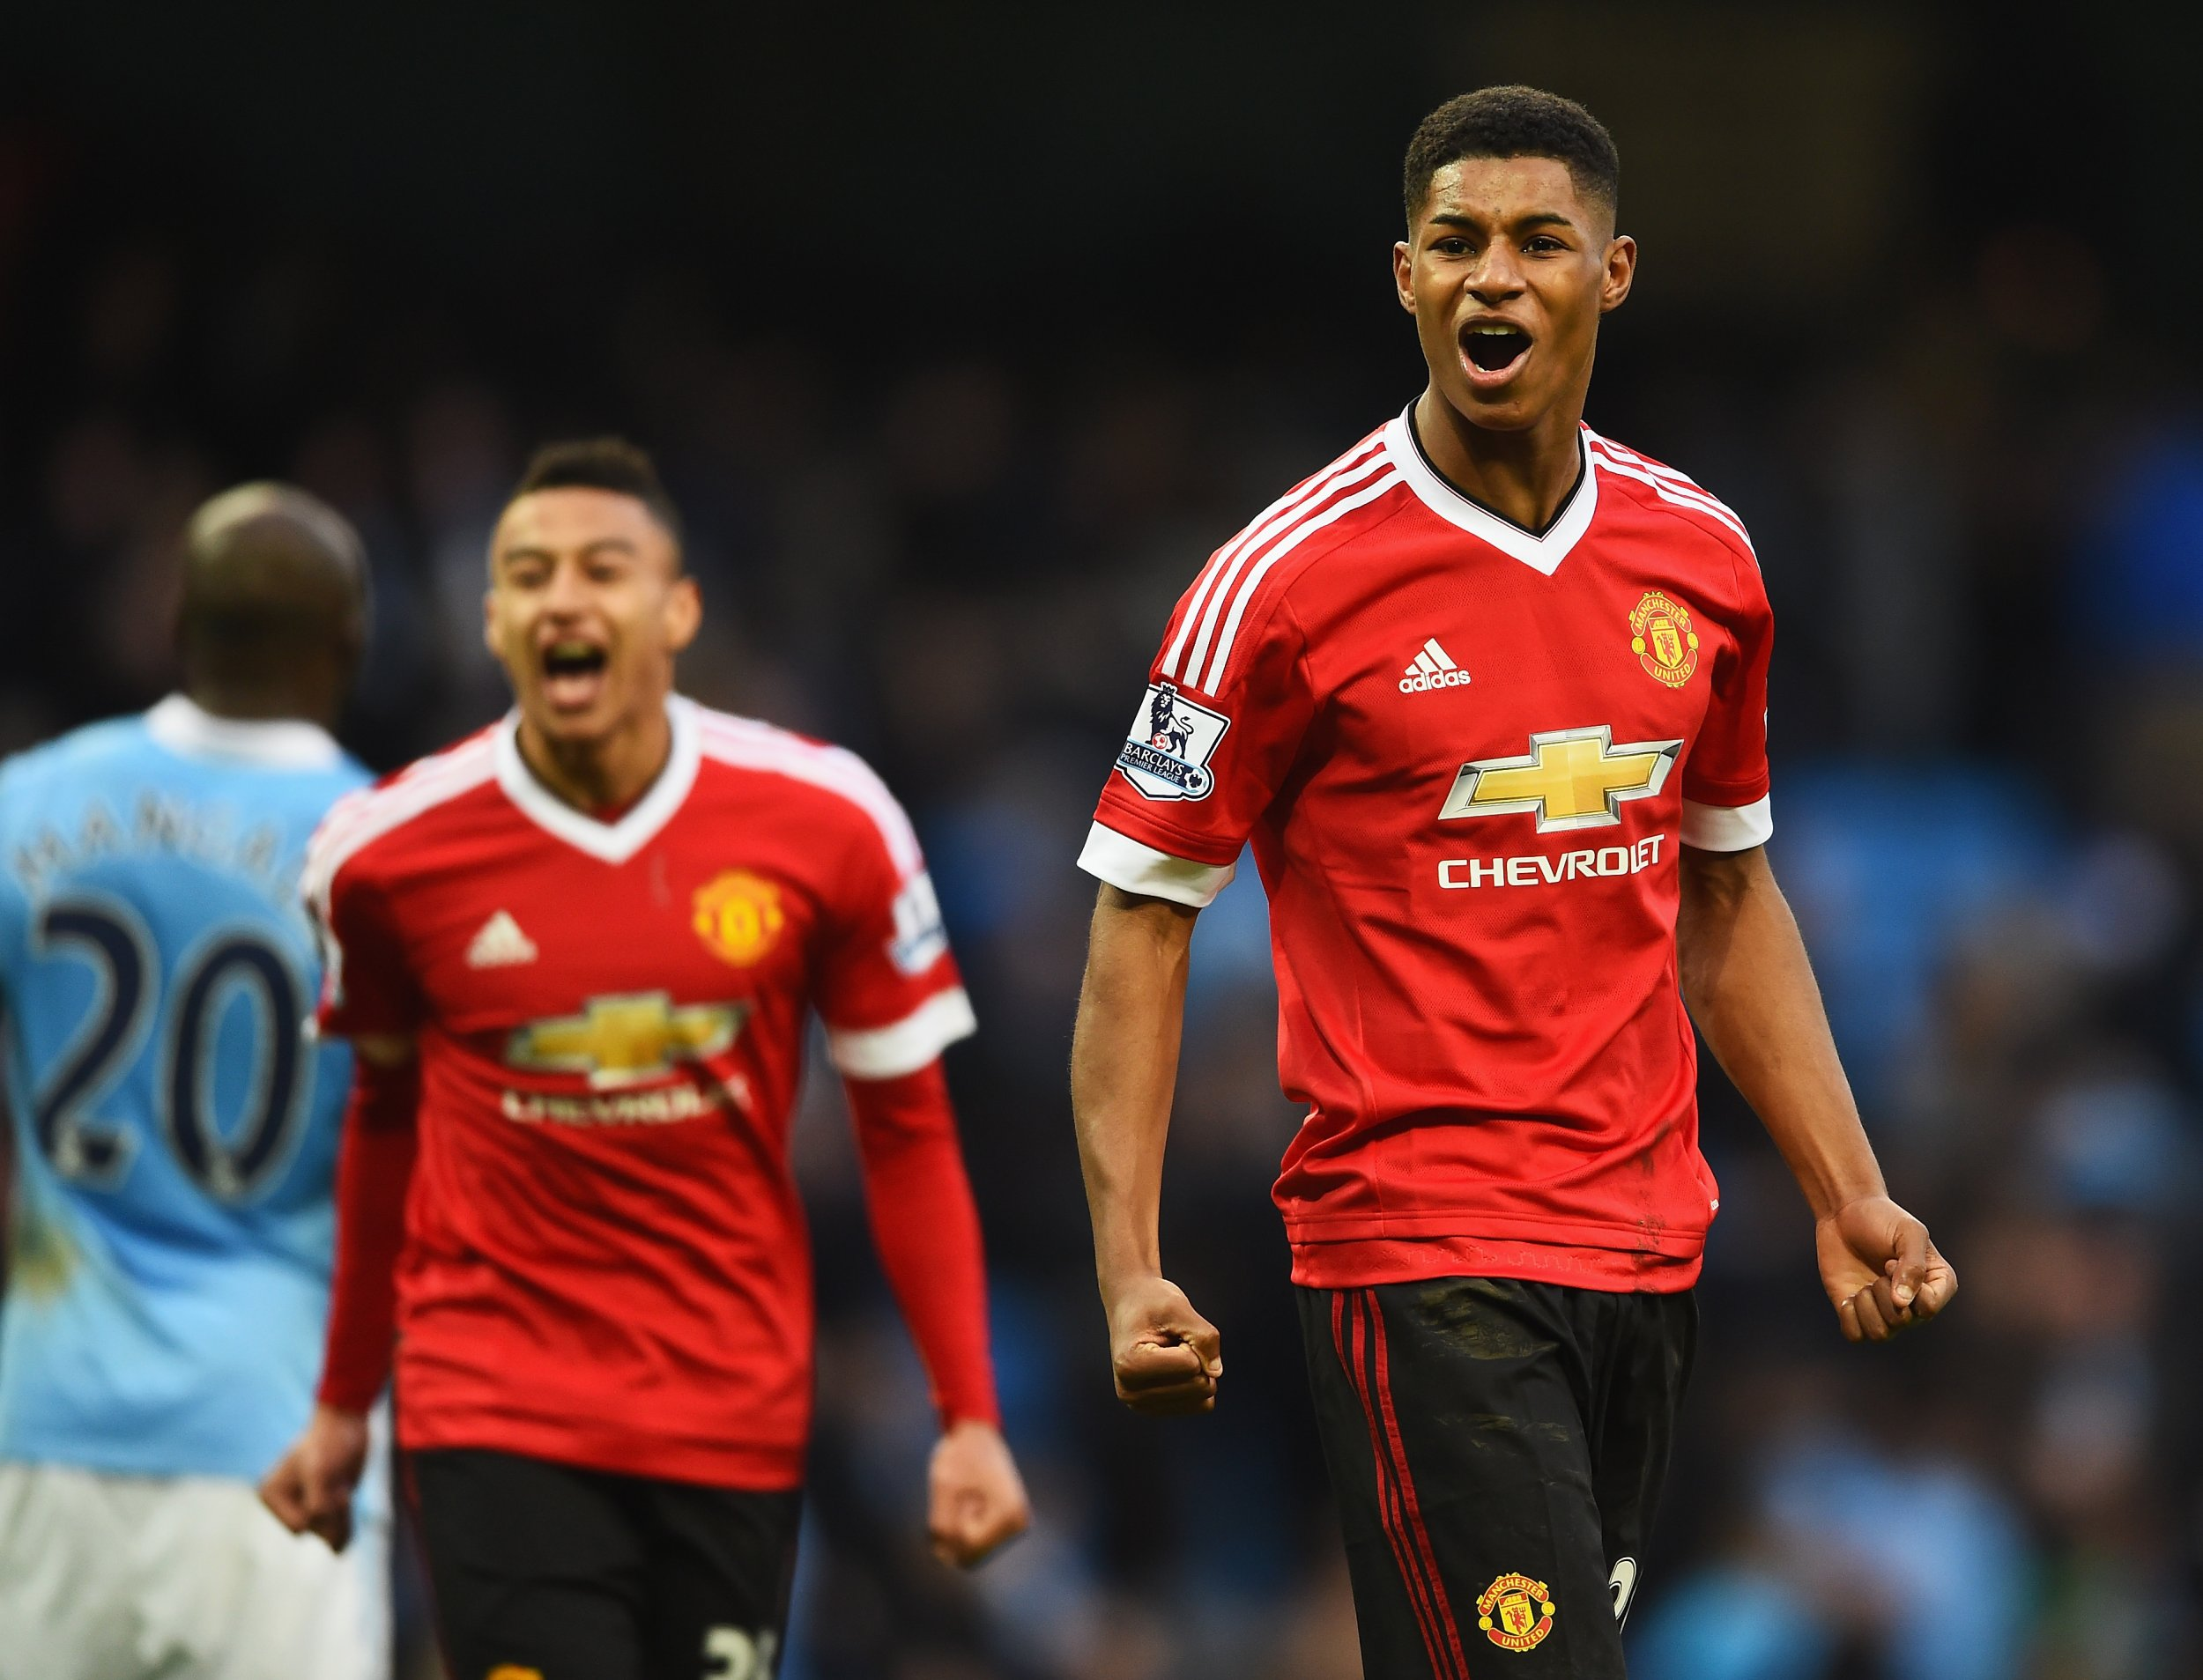 reputable site 3a68c 319f5 Manchester United: Jose Mourinho Youngsters Given England ...